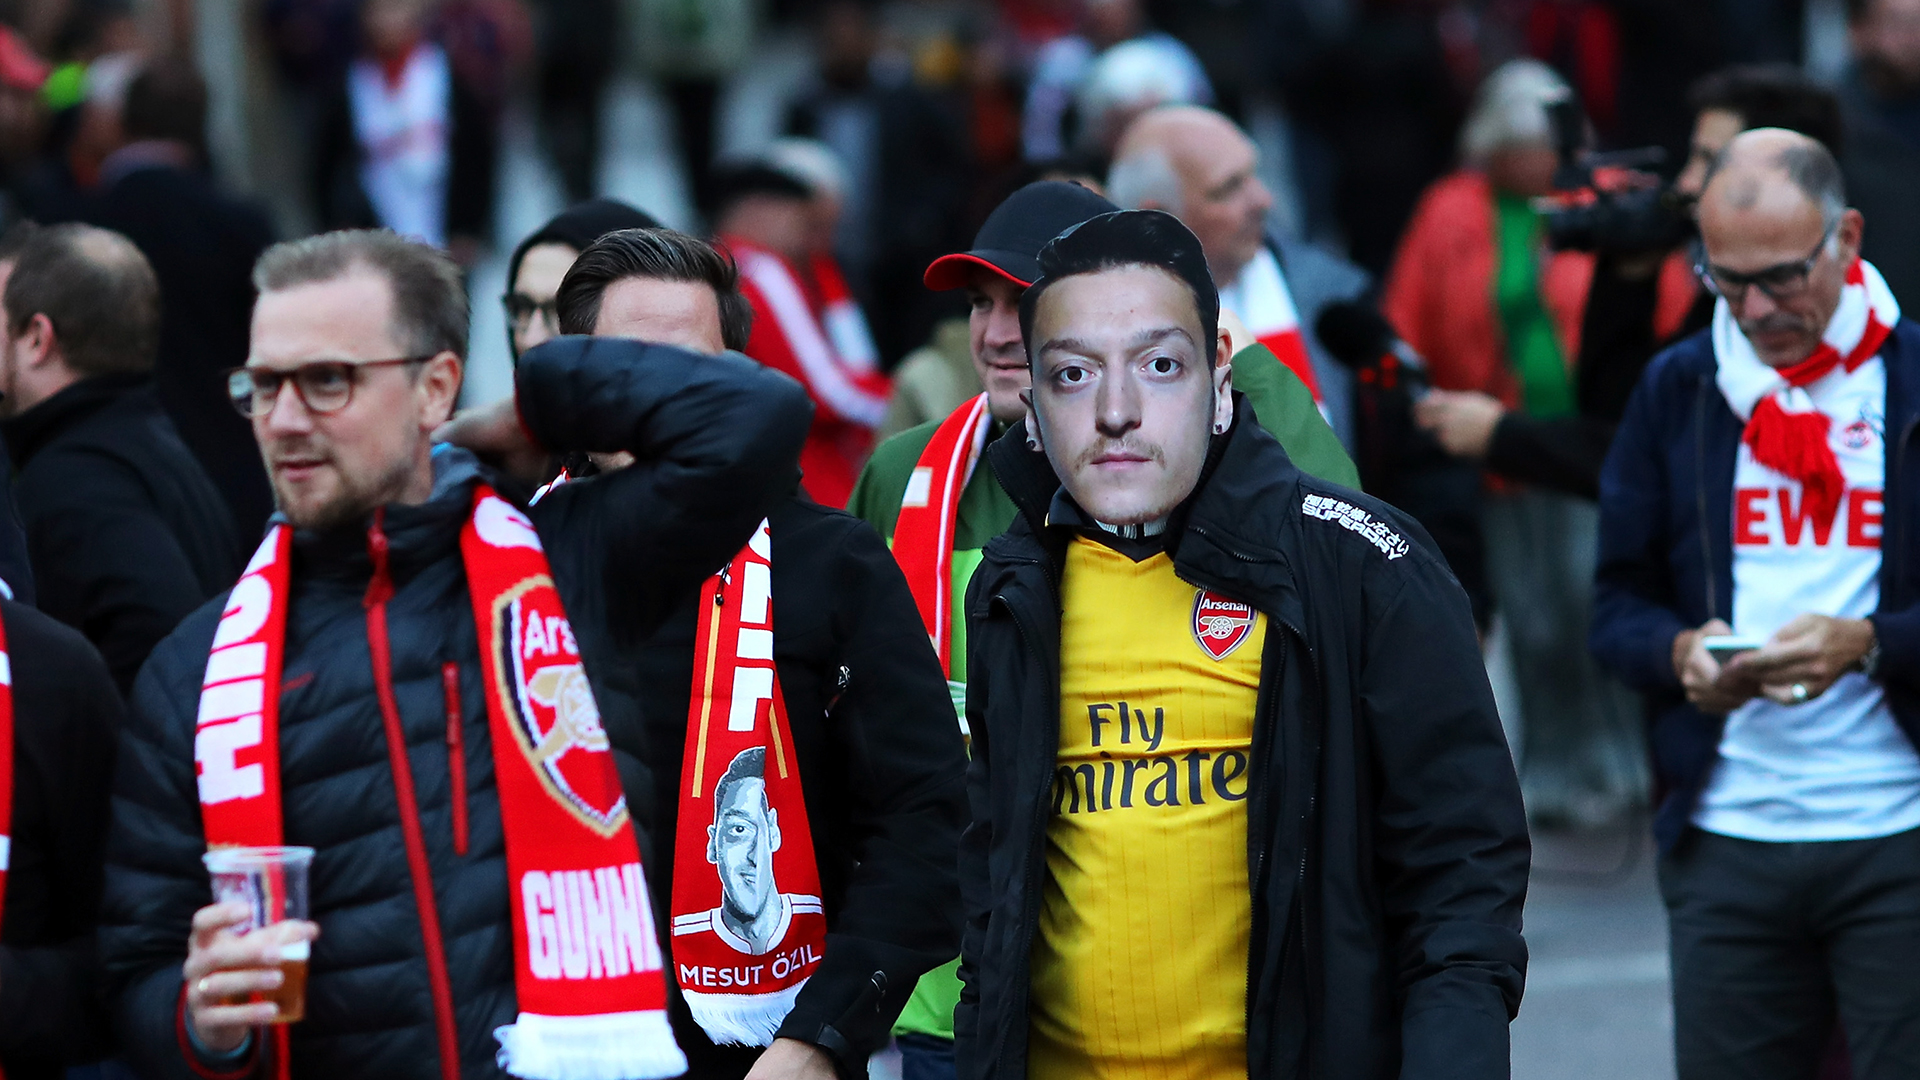 Mesut Ozil Arsenal fan